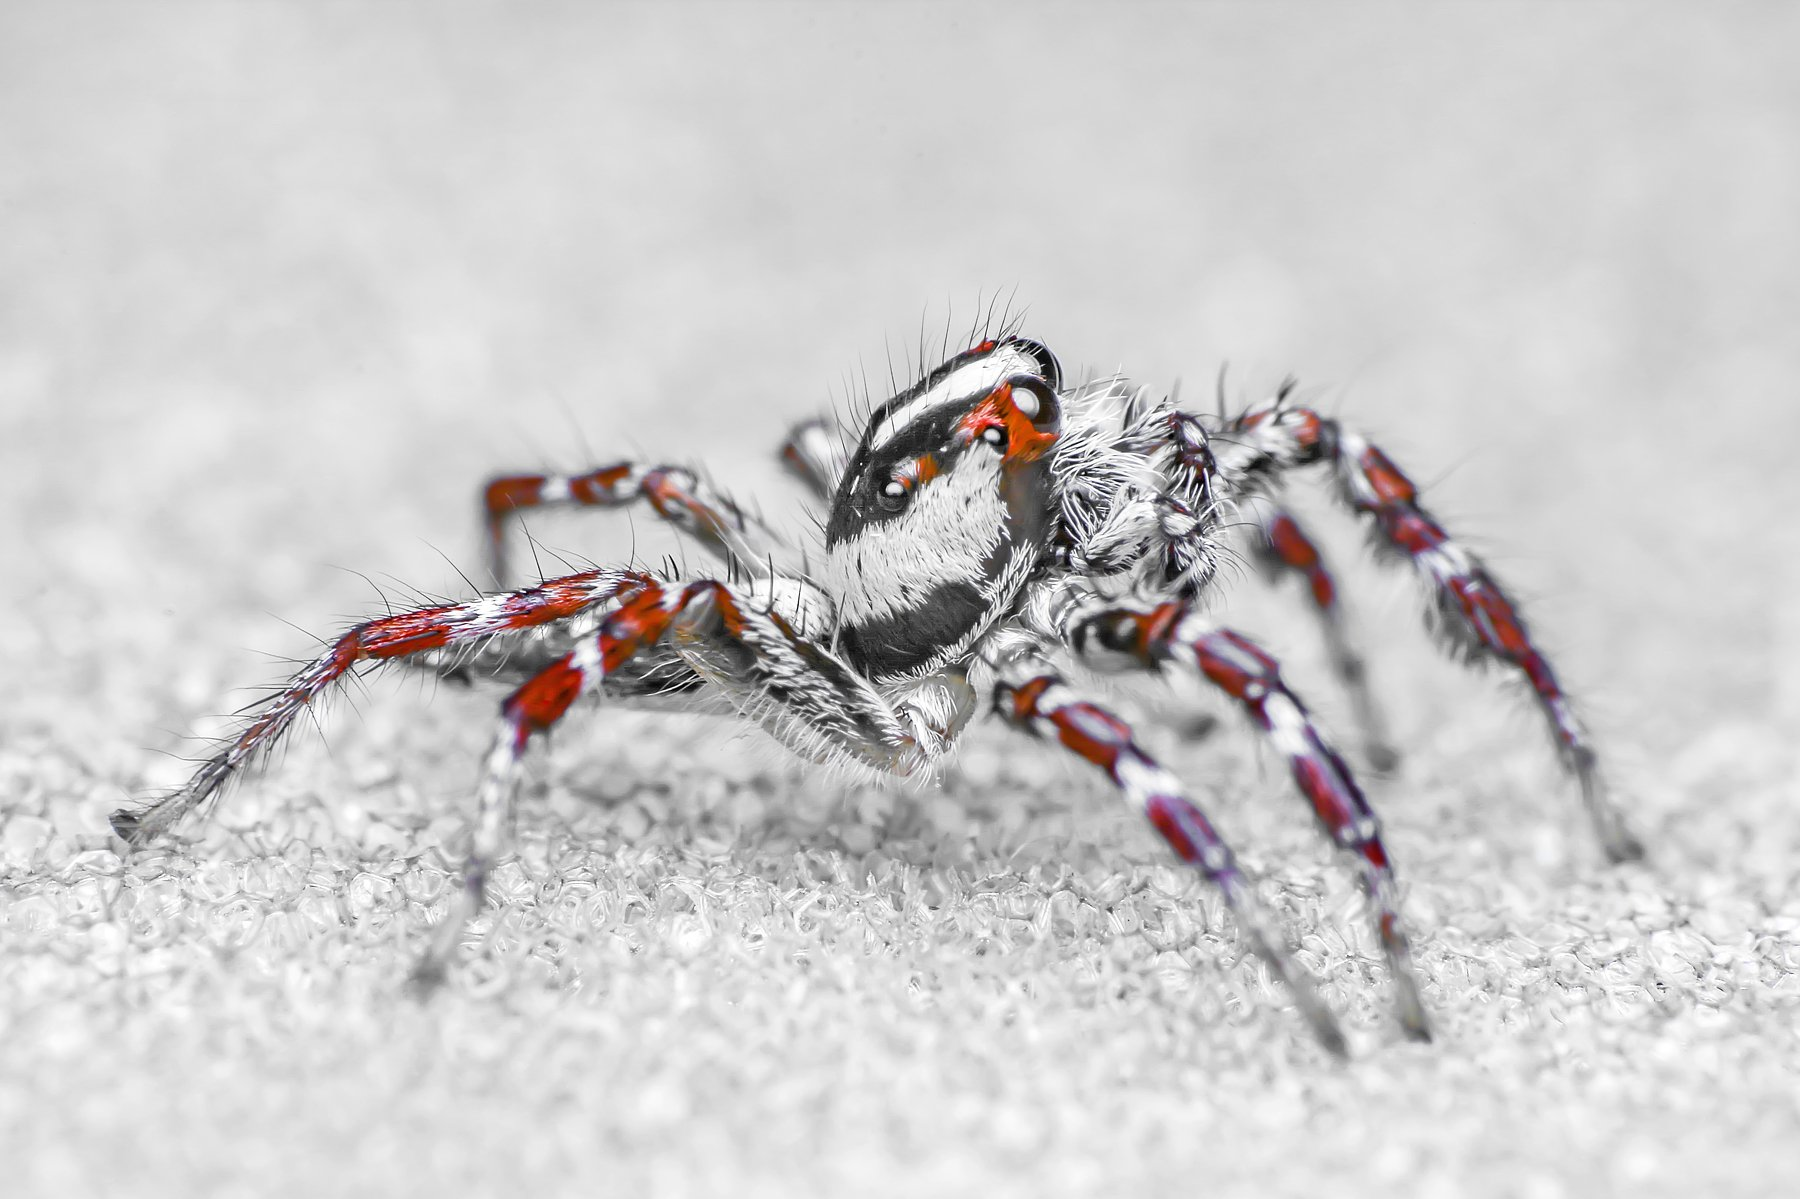 spider, insect animal, danger, dangerus, beatiful, beauty, tropical, eyes, small, macro, close up, jumpon leaf, park, outdoor, forest prey, wild, wildlife, snow, snowy, white, red, nature, natural, garden, ChonTin NeCoTi